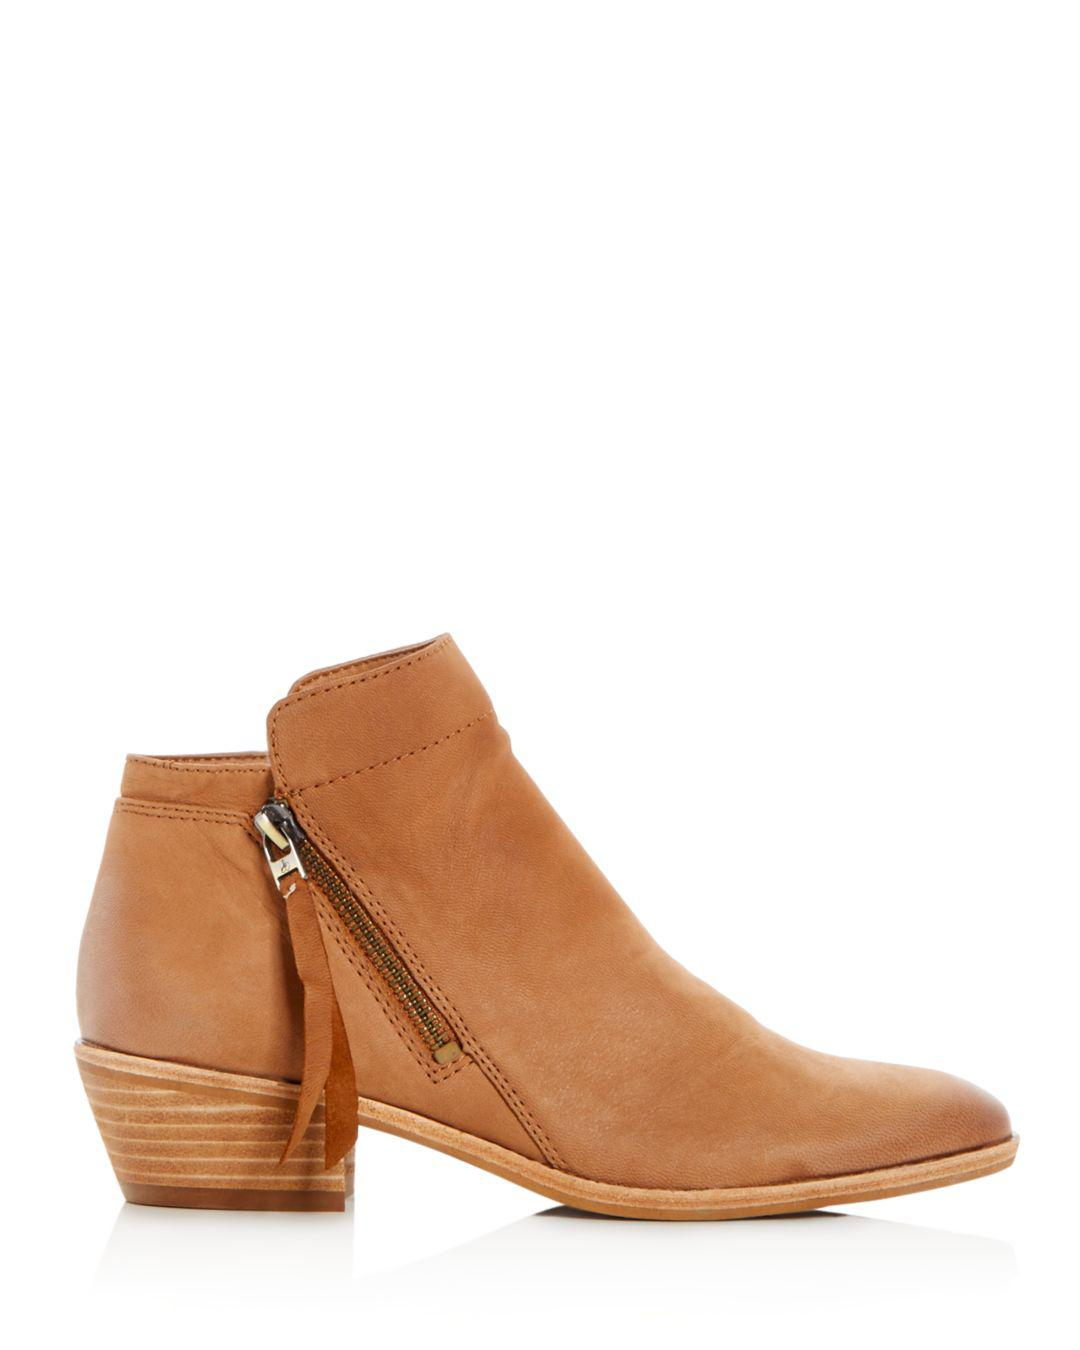 d59323df743475 Lyst - Sam Edelman Women s Packer Leather Low Heel Booties in Brown